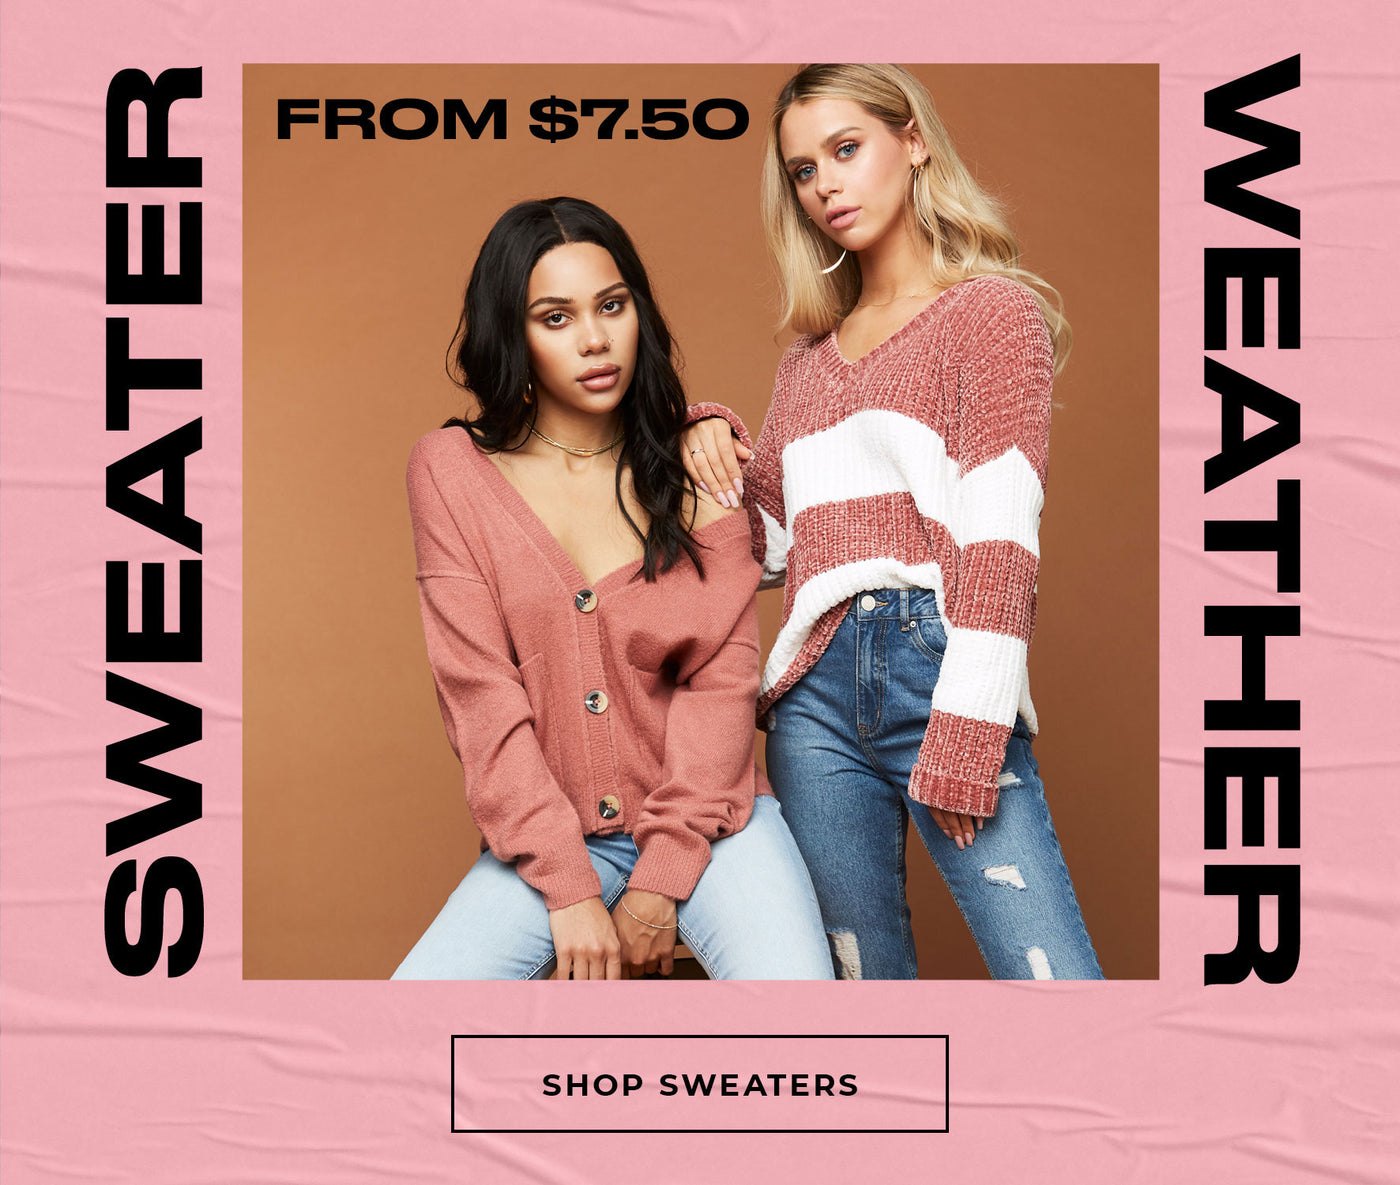 Charlotte Russe | Shop Sweaters from $7.50